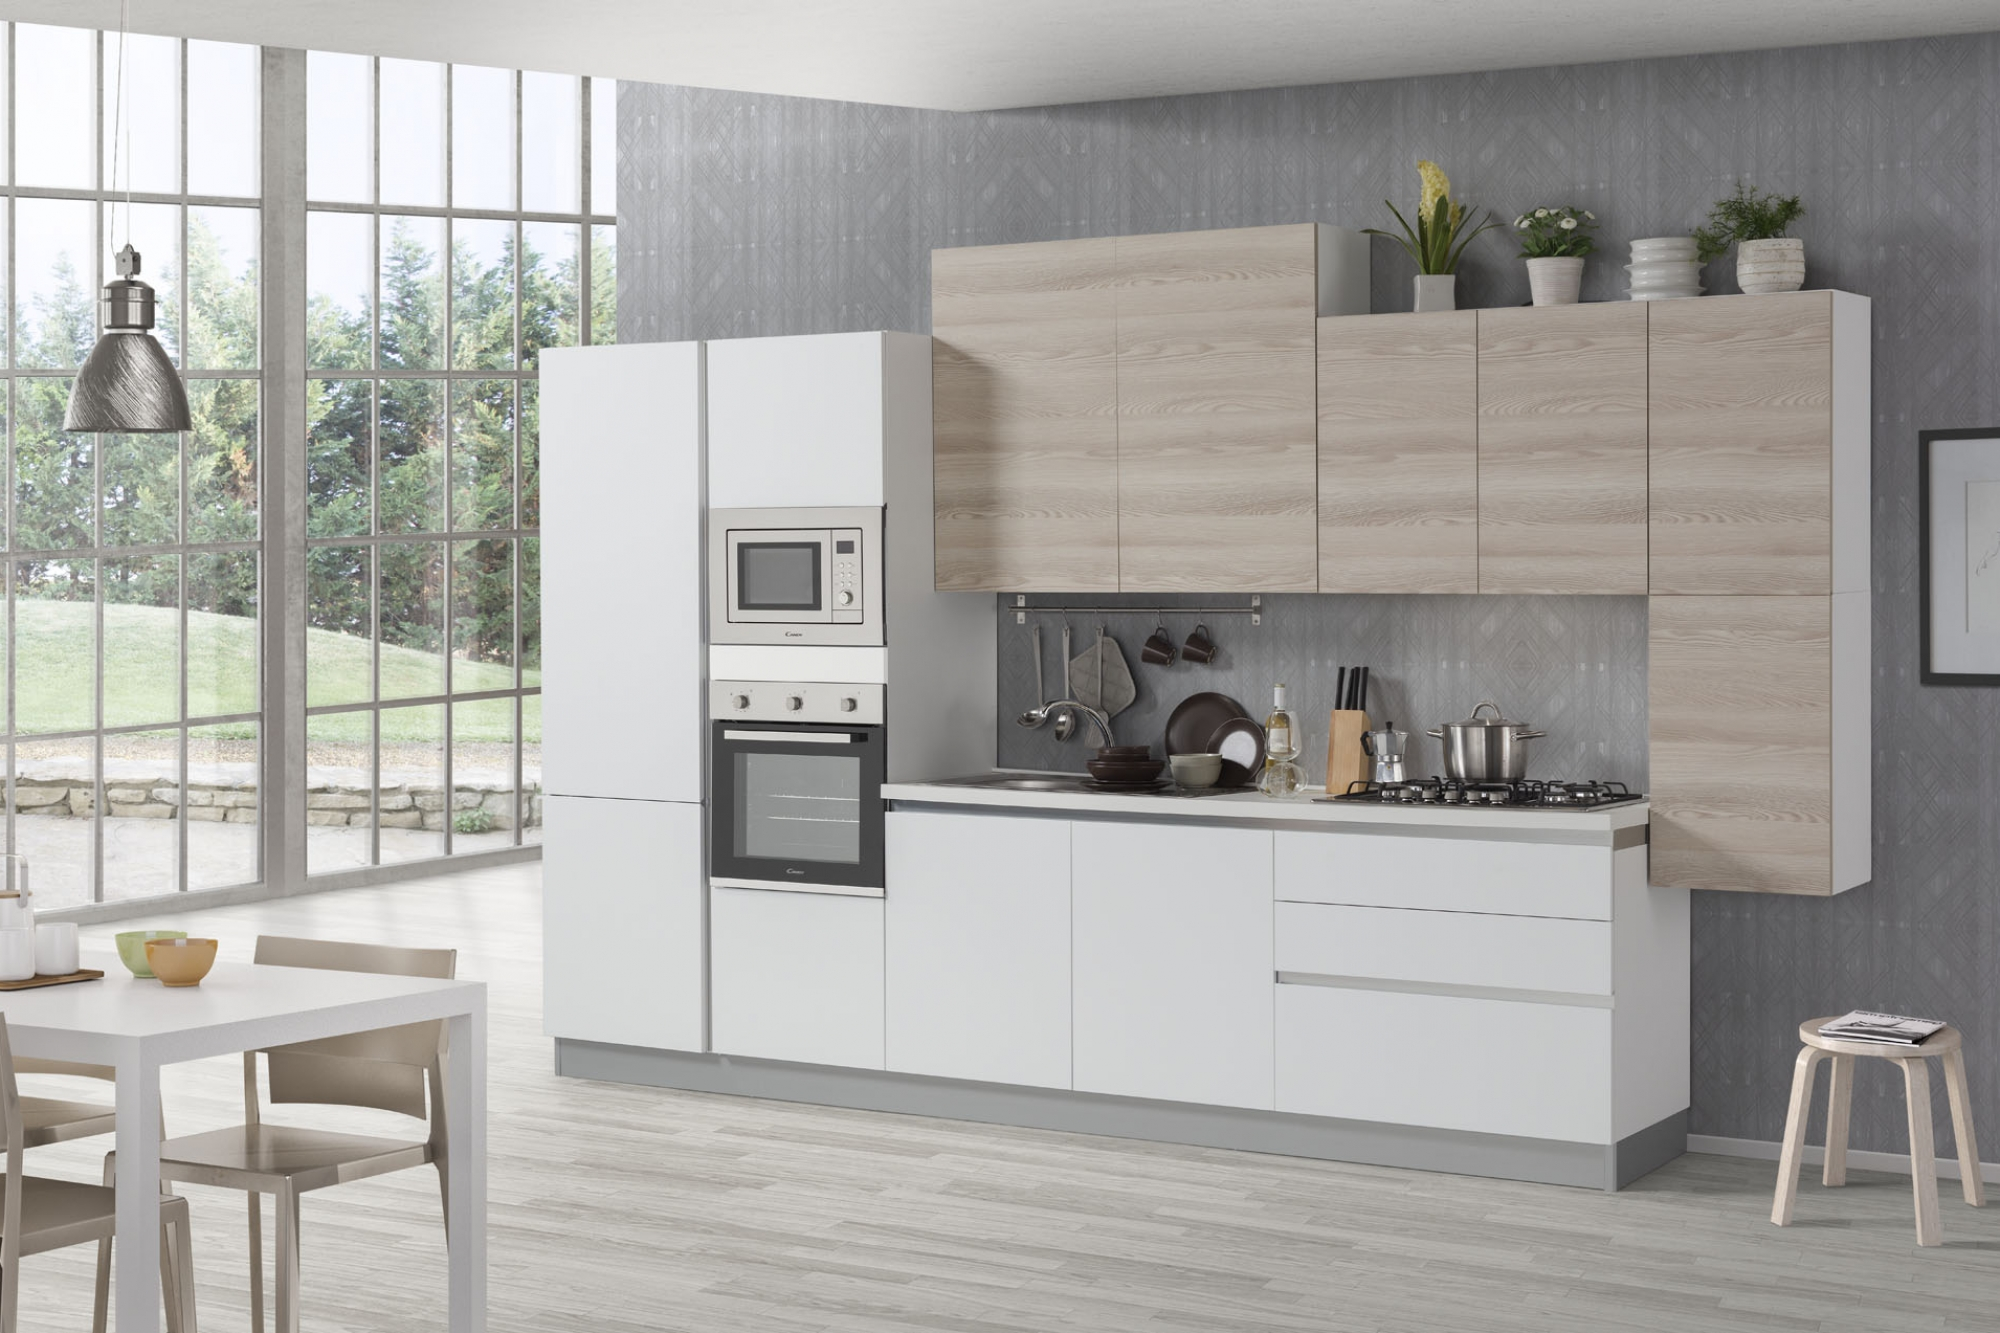 Melody cucine opinioni affordable jens ischebeck guidance in africaus many money transfer - Cucine da esterno prezzi ...